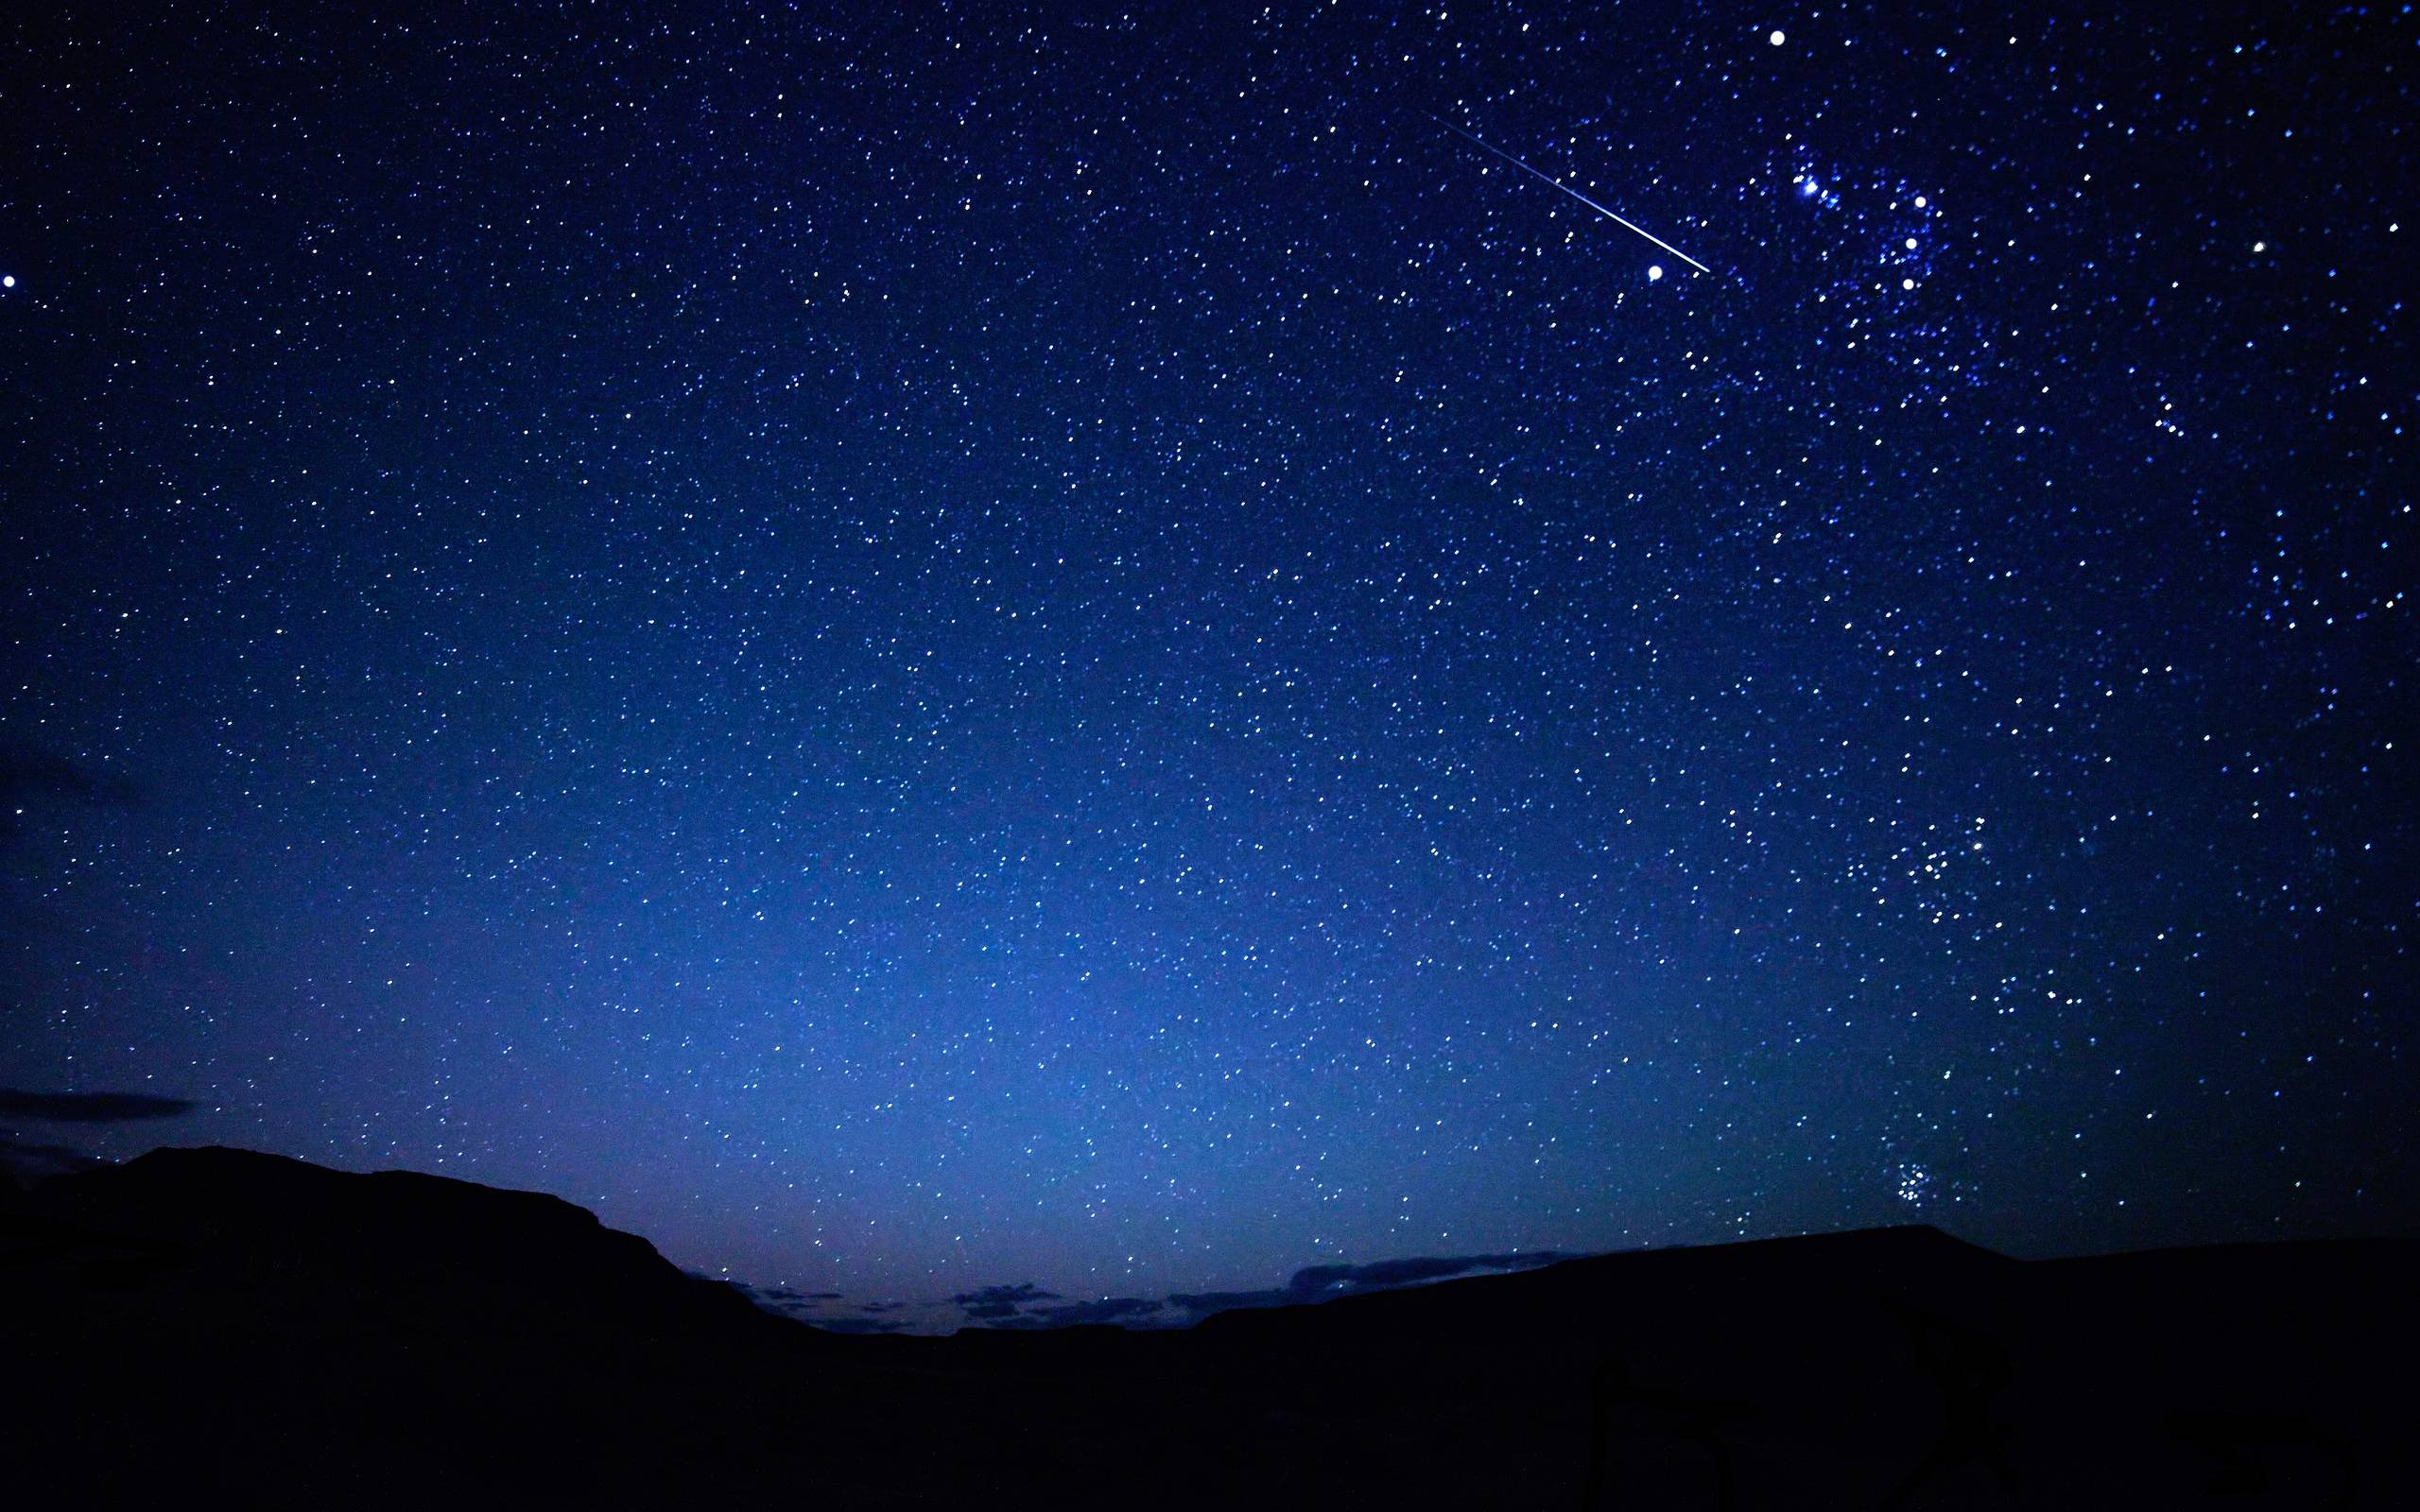 Starry Night Sky Wallpapers - Wallpaper Cave